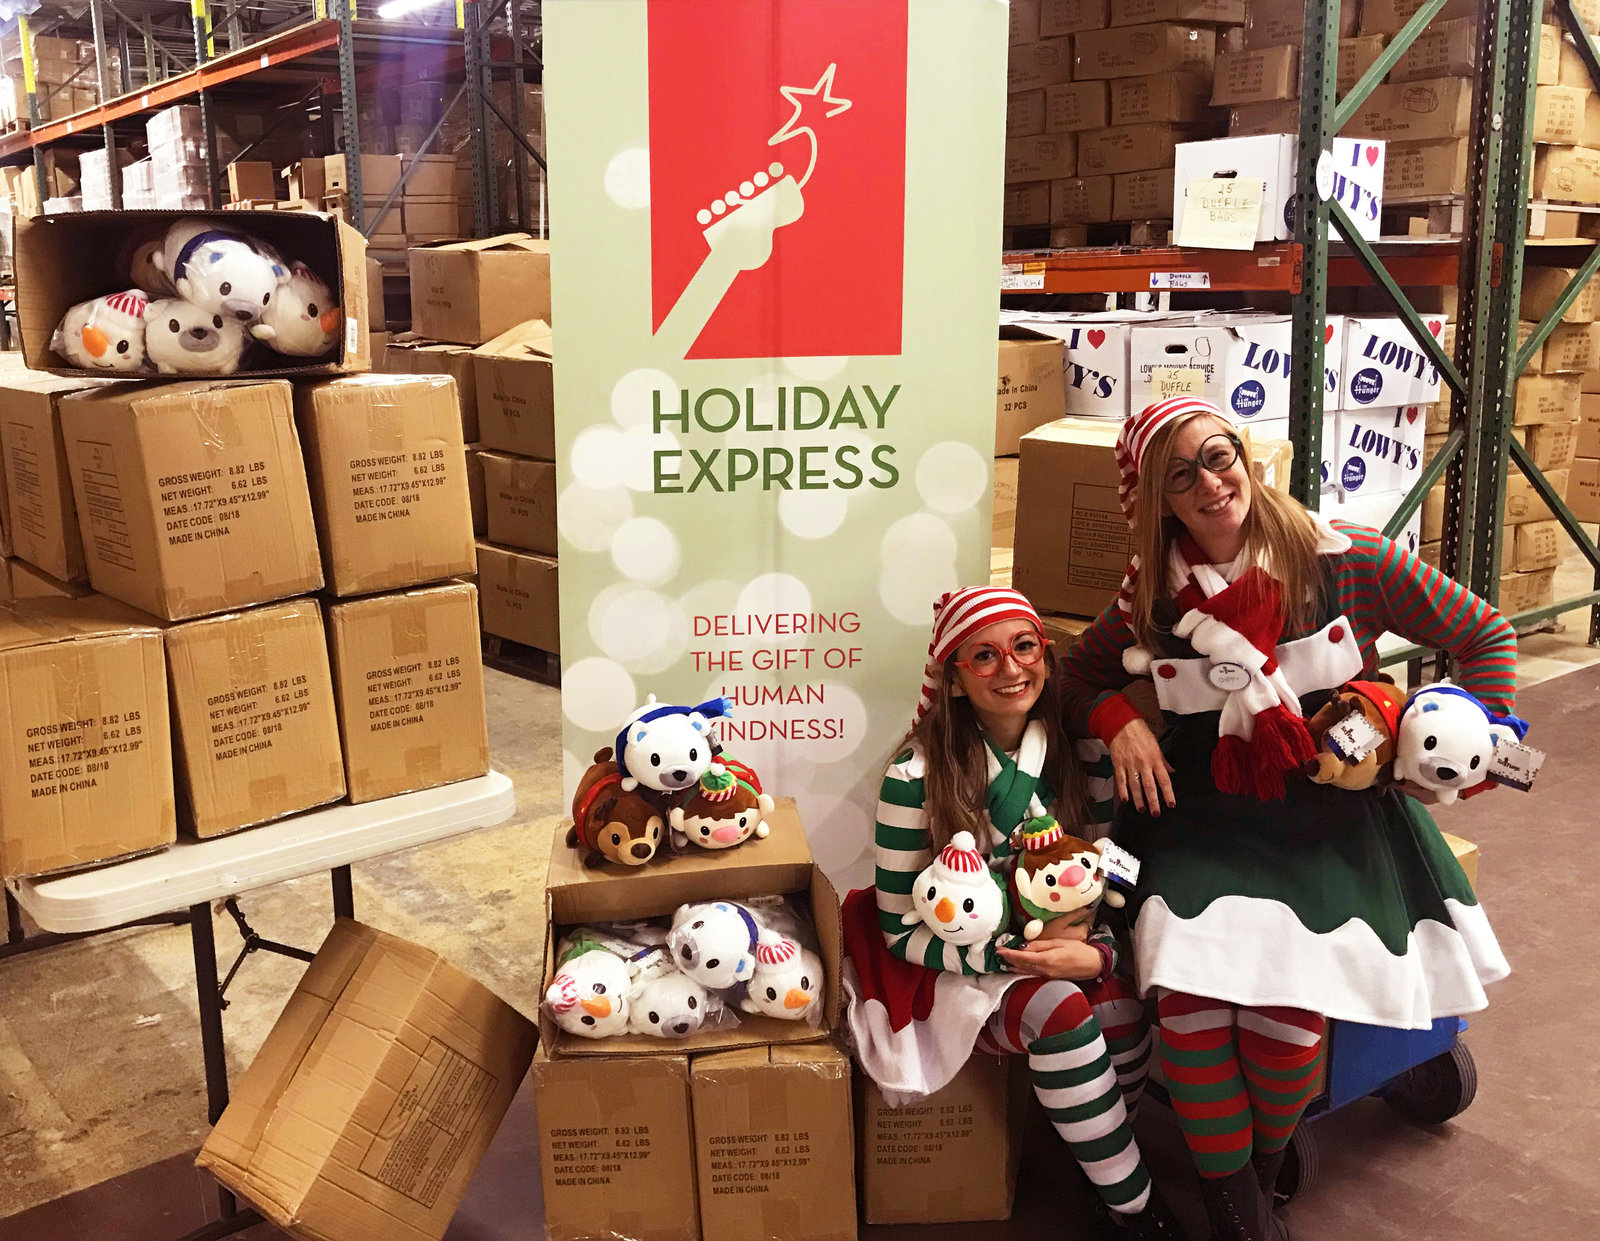 Elves deliver plush to Holiday Express.jpg